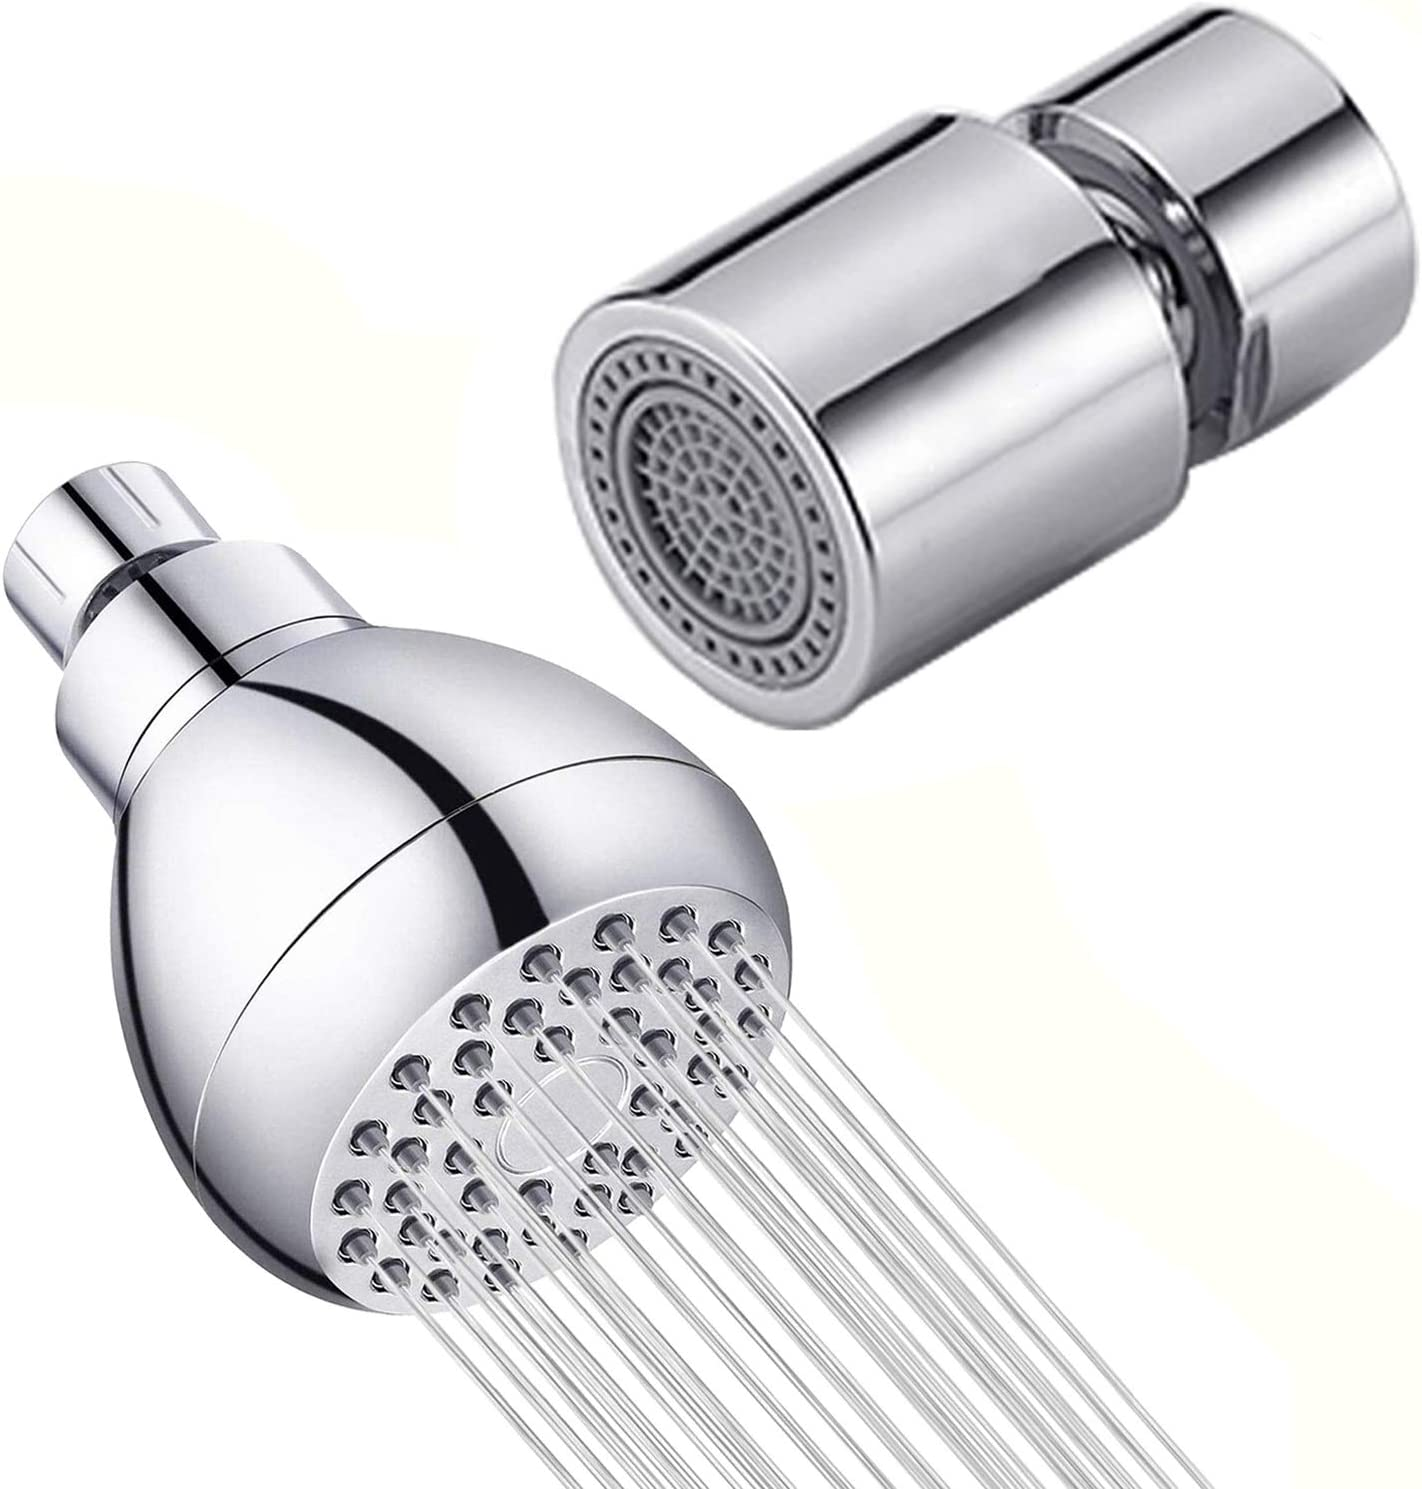 Shower Nozzle Water Saving Aerator Faucet Filter Faucet Aerator Two Water Mode Kitchen Tool Kitchen Faucet Aerator Water Bubbler,silver